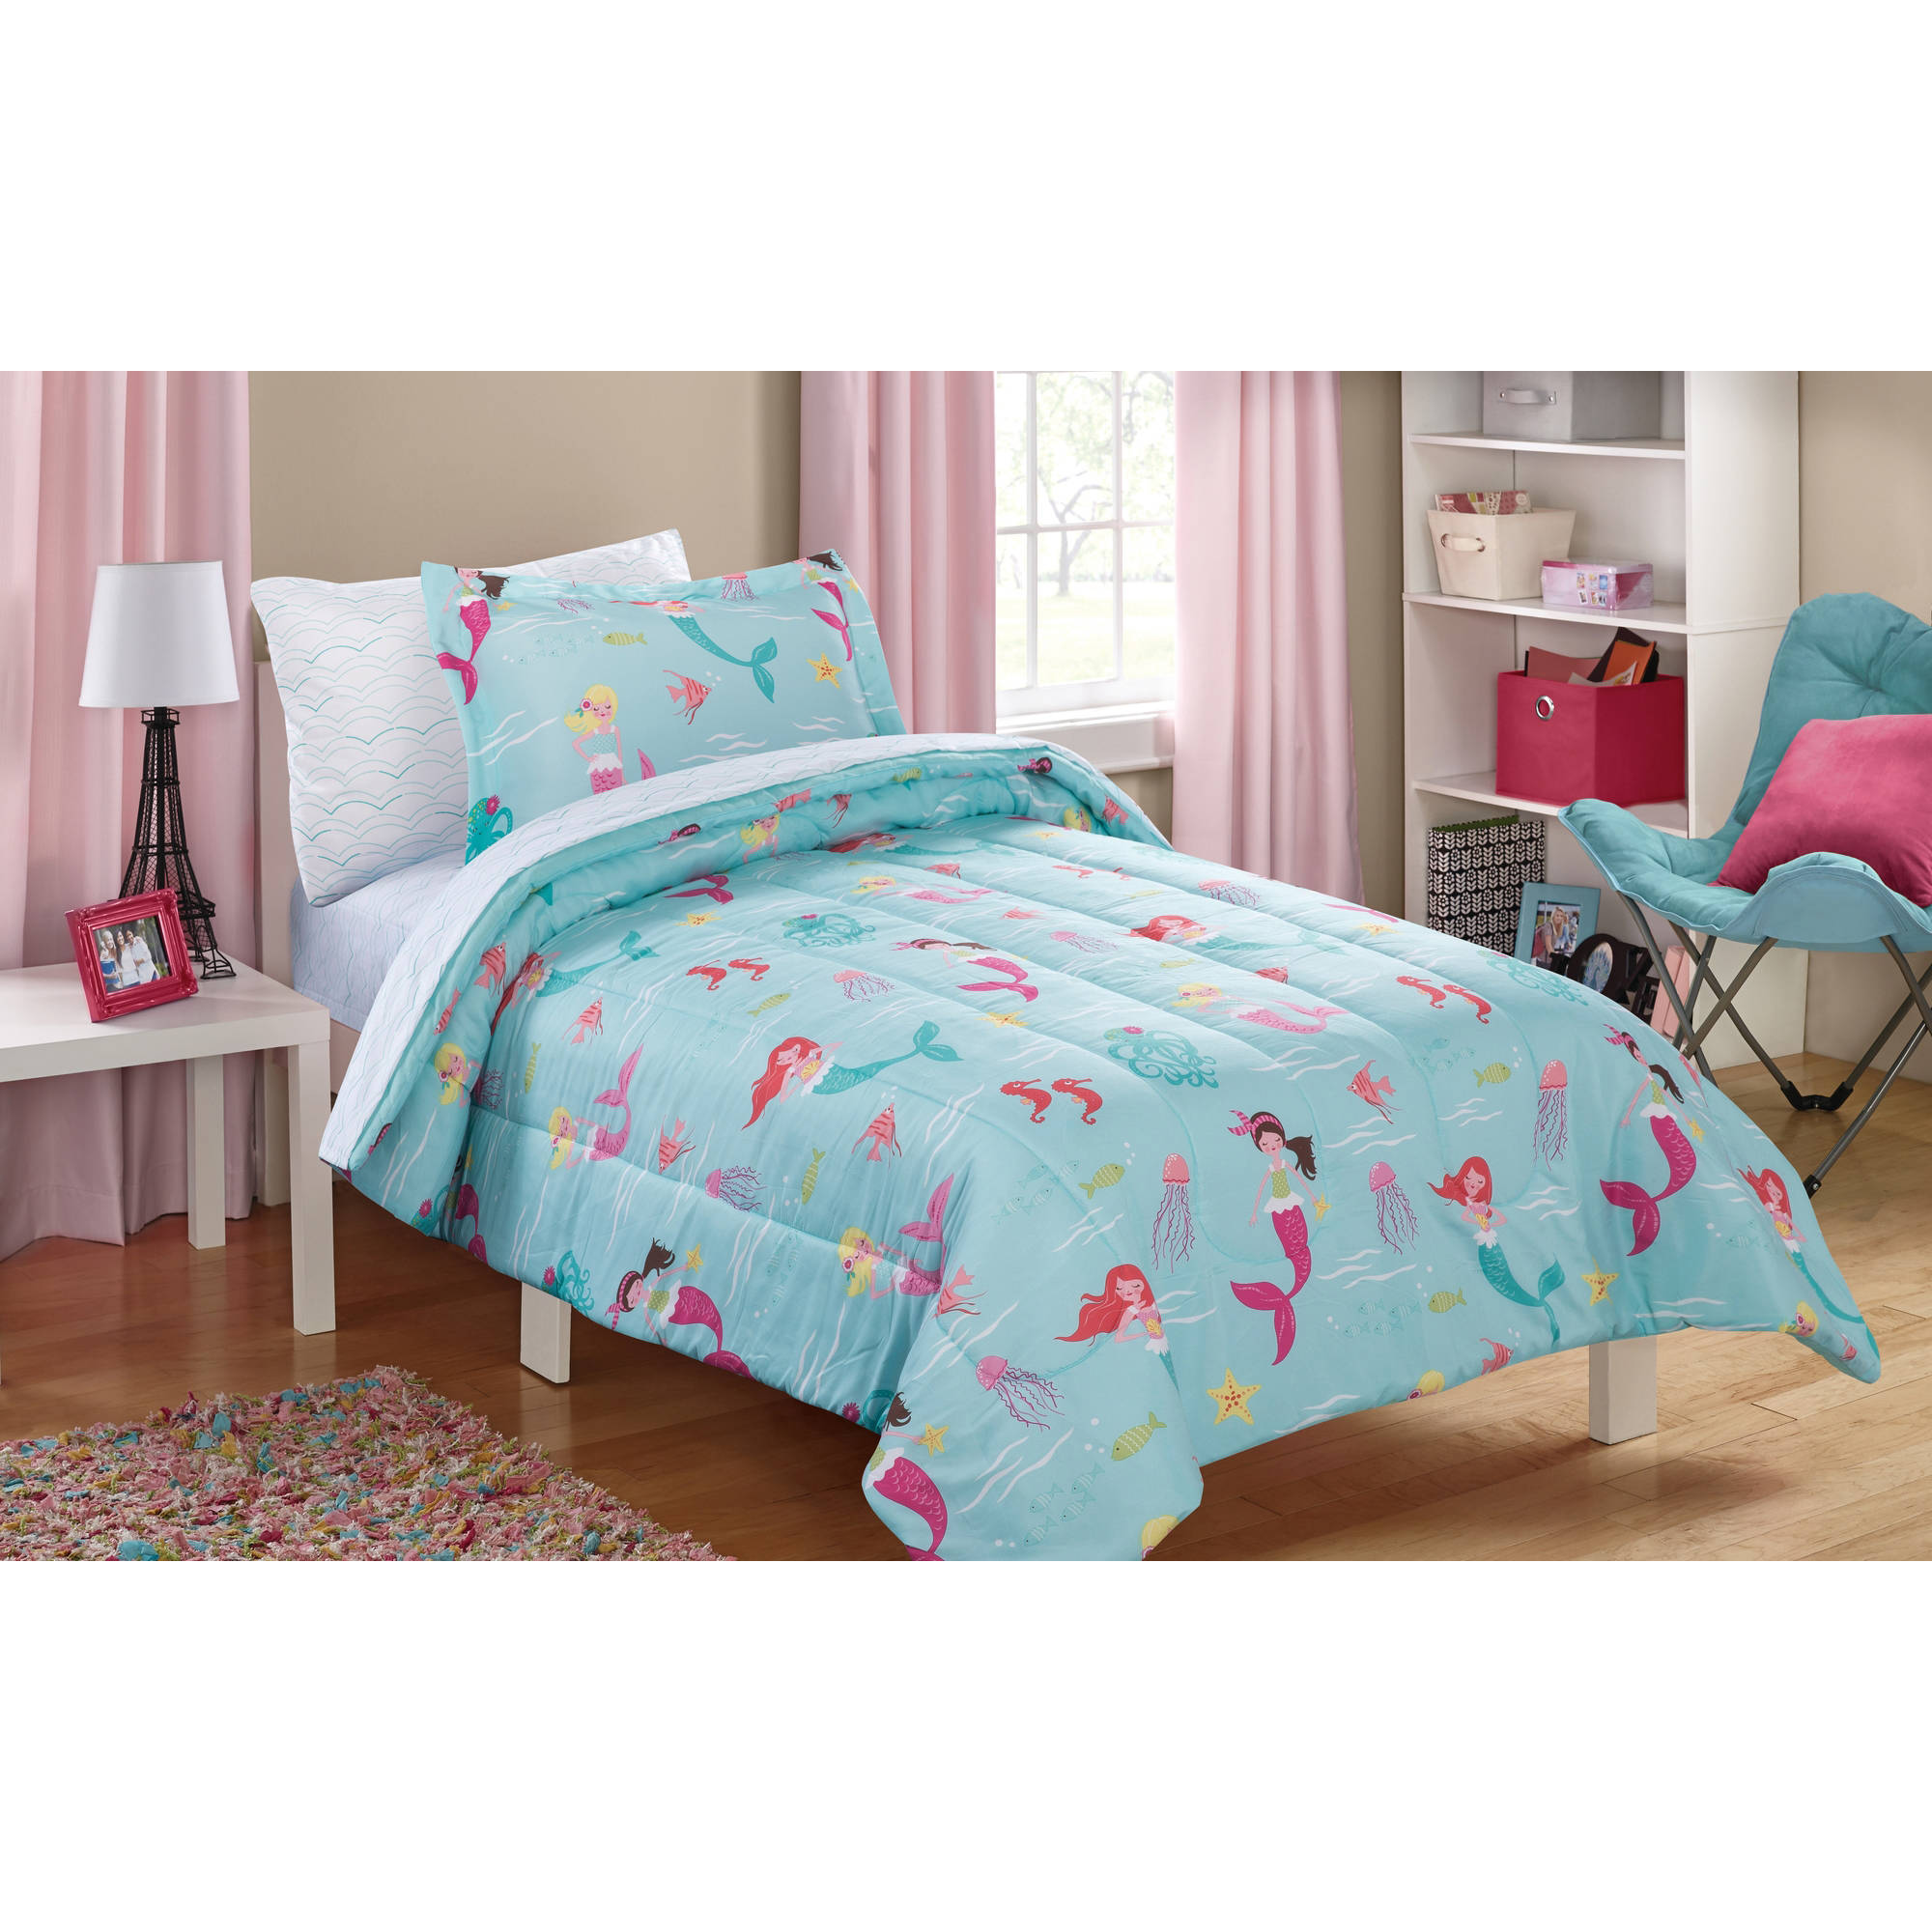 mainstays kids mint mermaid bed in a bag complete bedding set. Black Bedroom Furniture Sets. Home Design Ideas